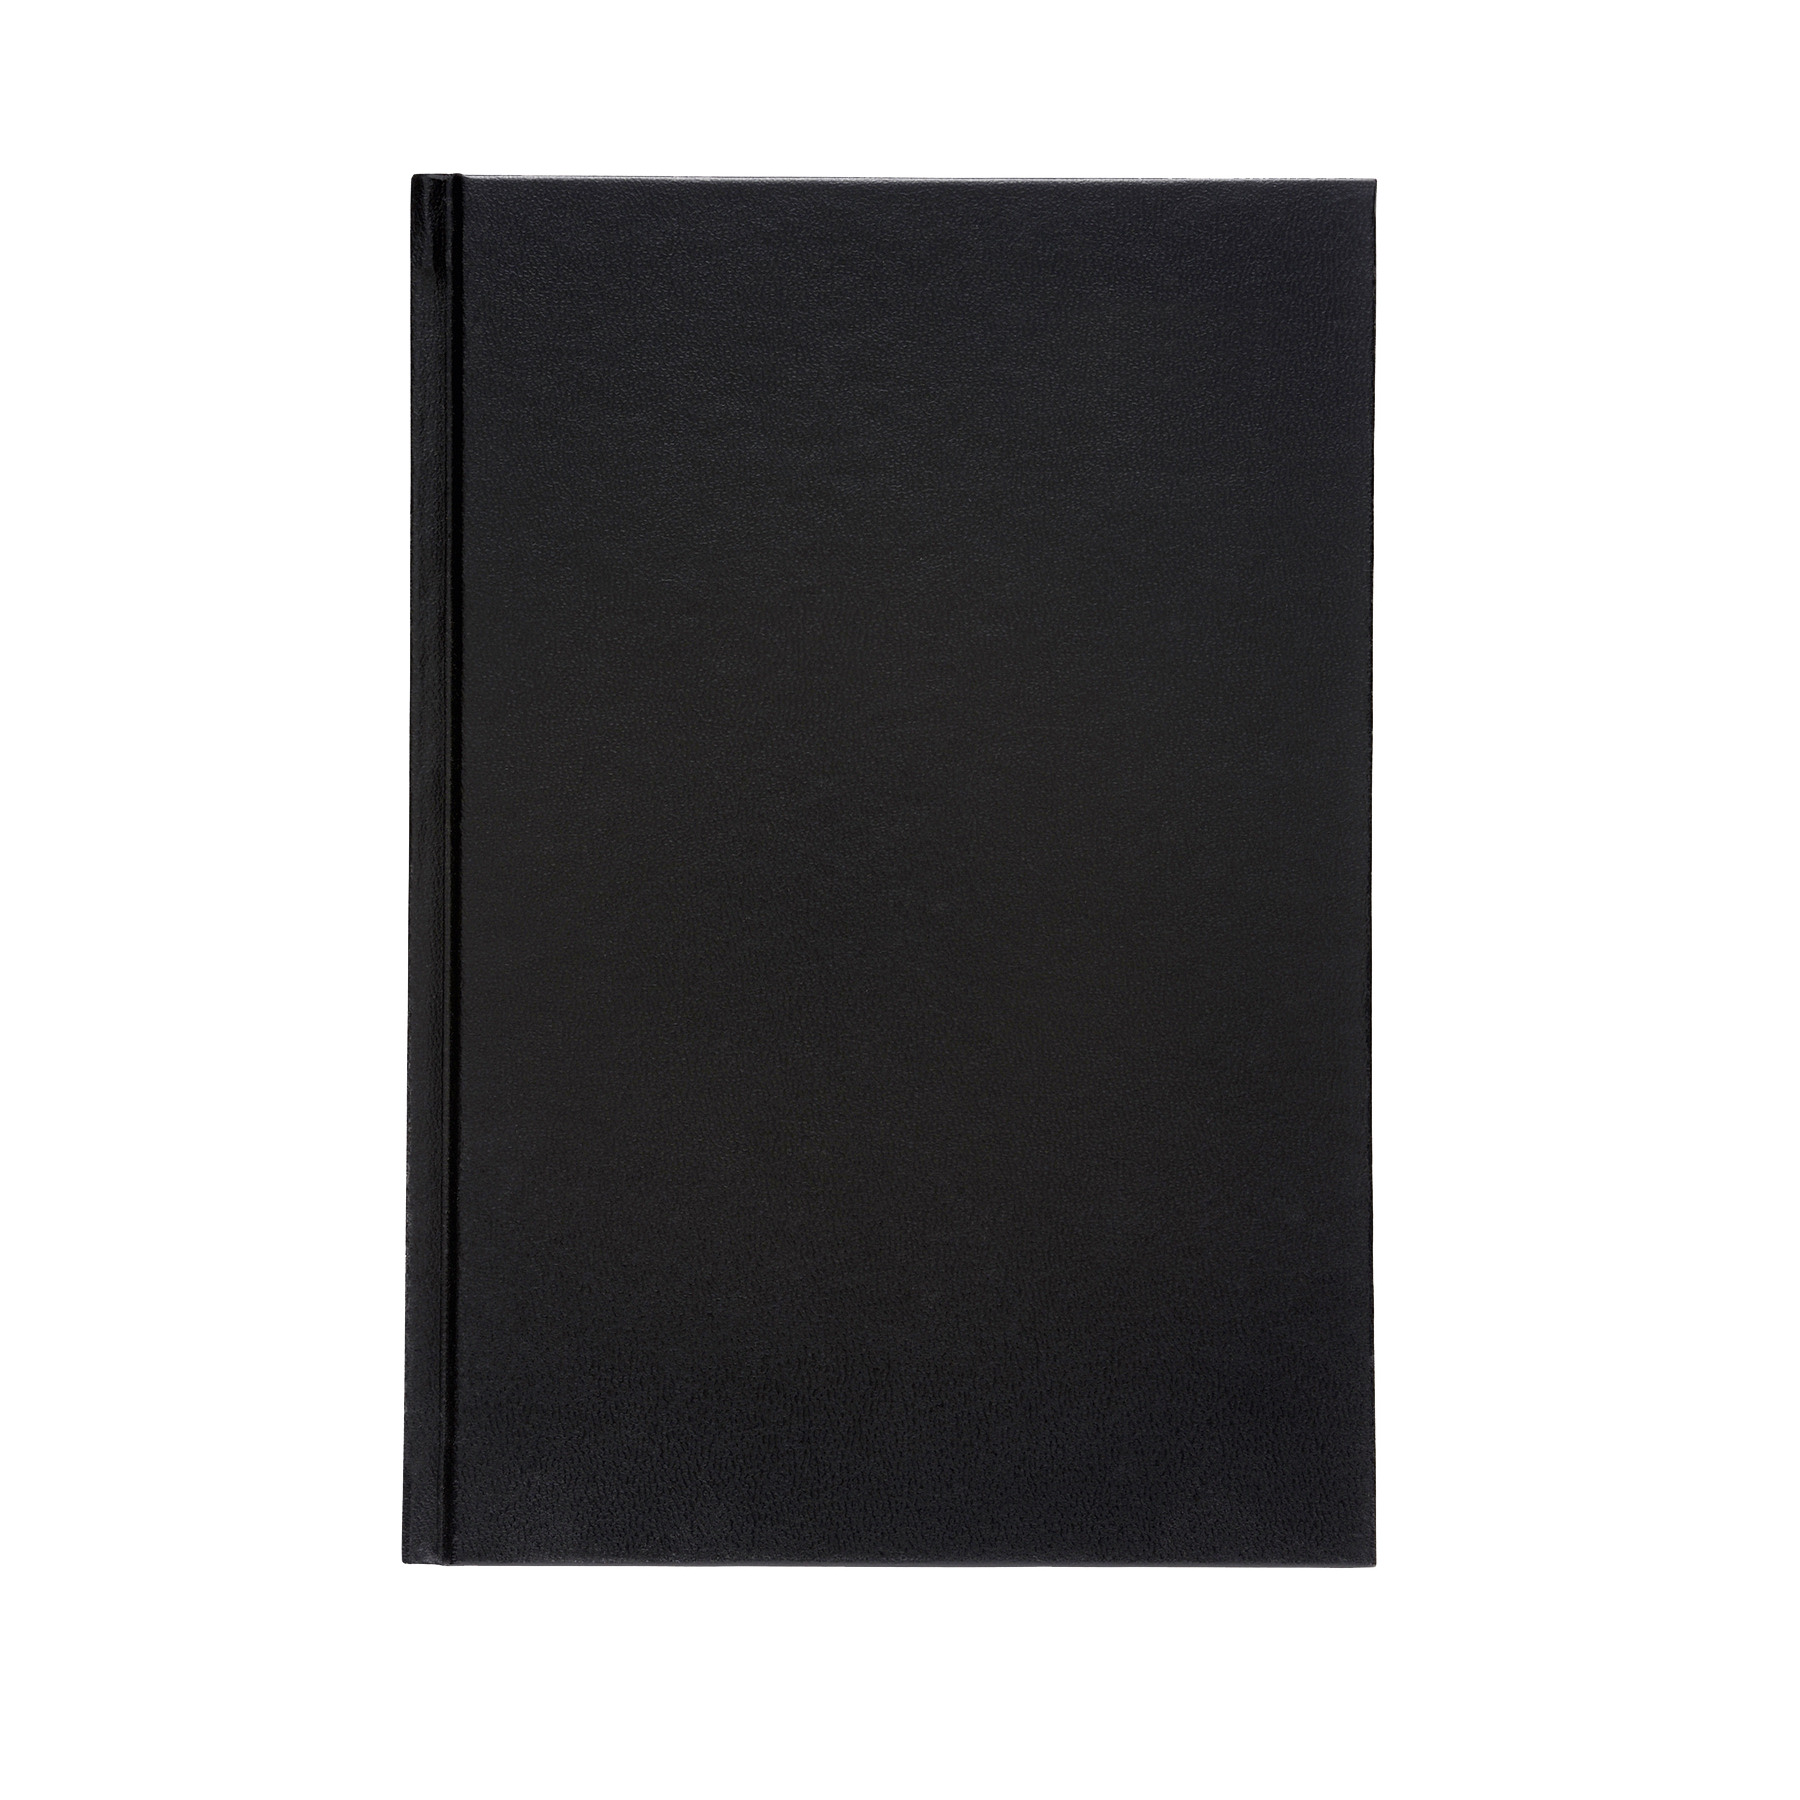 5 Star 2016-2017 Academic Year Diary A5 Week to View Black